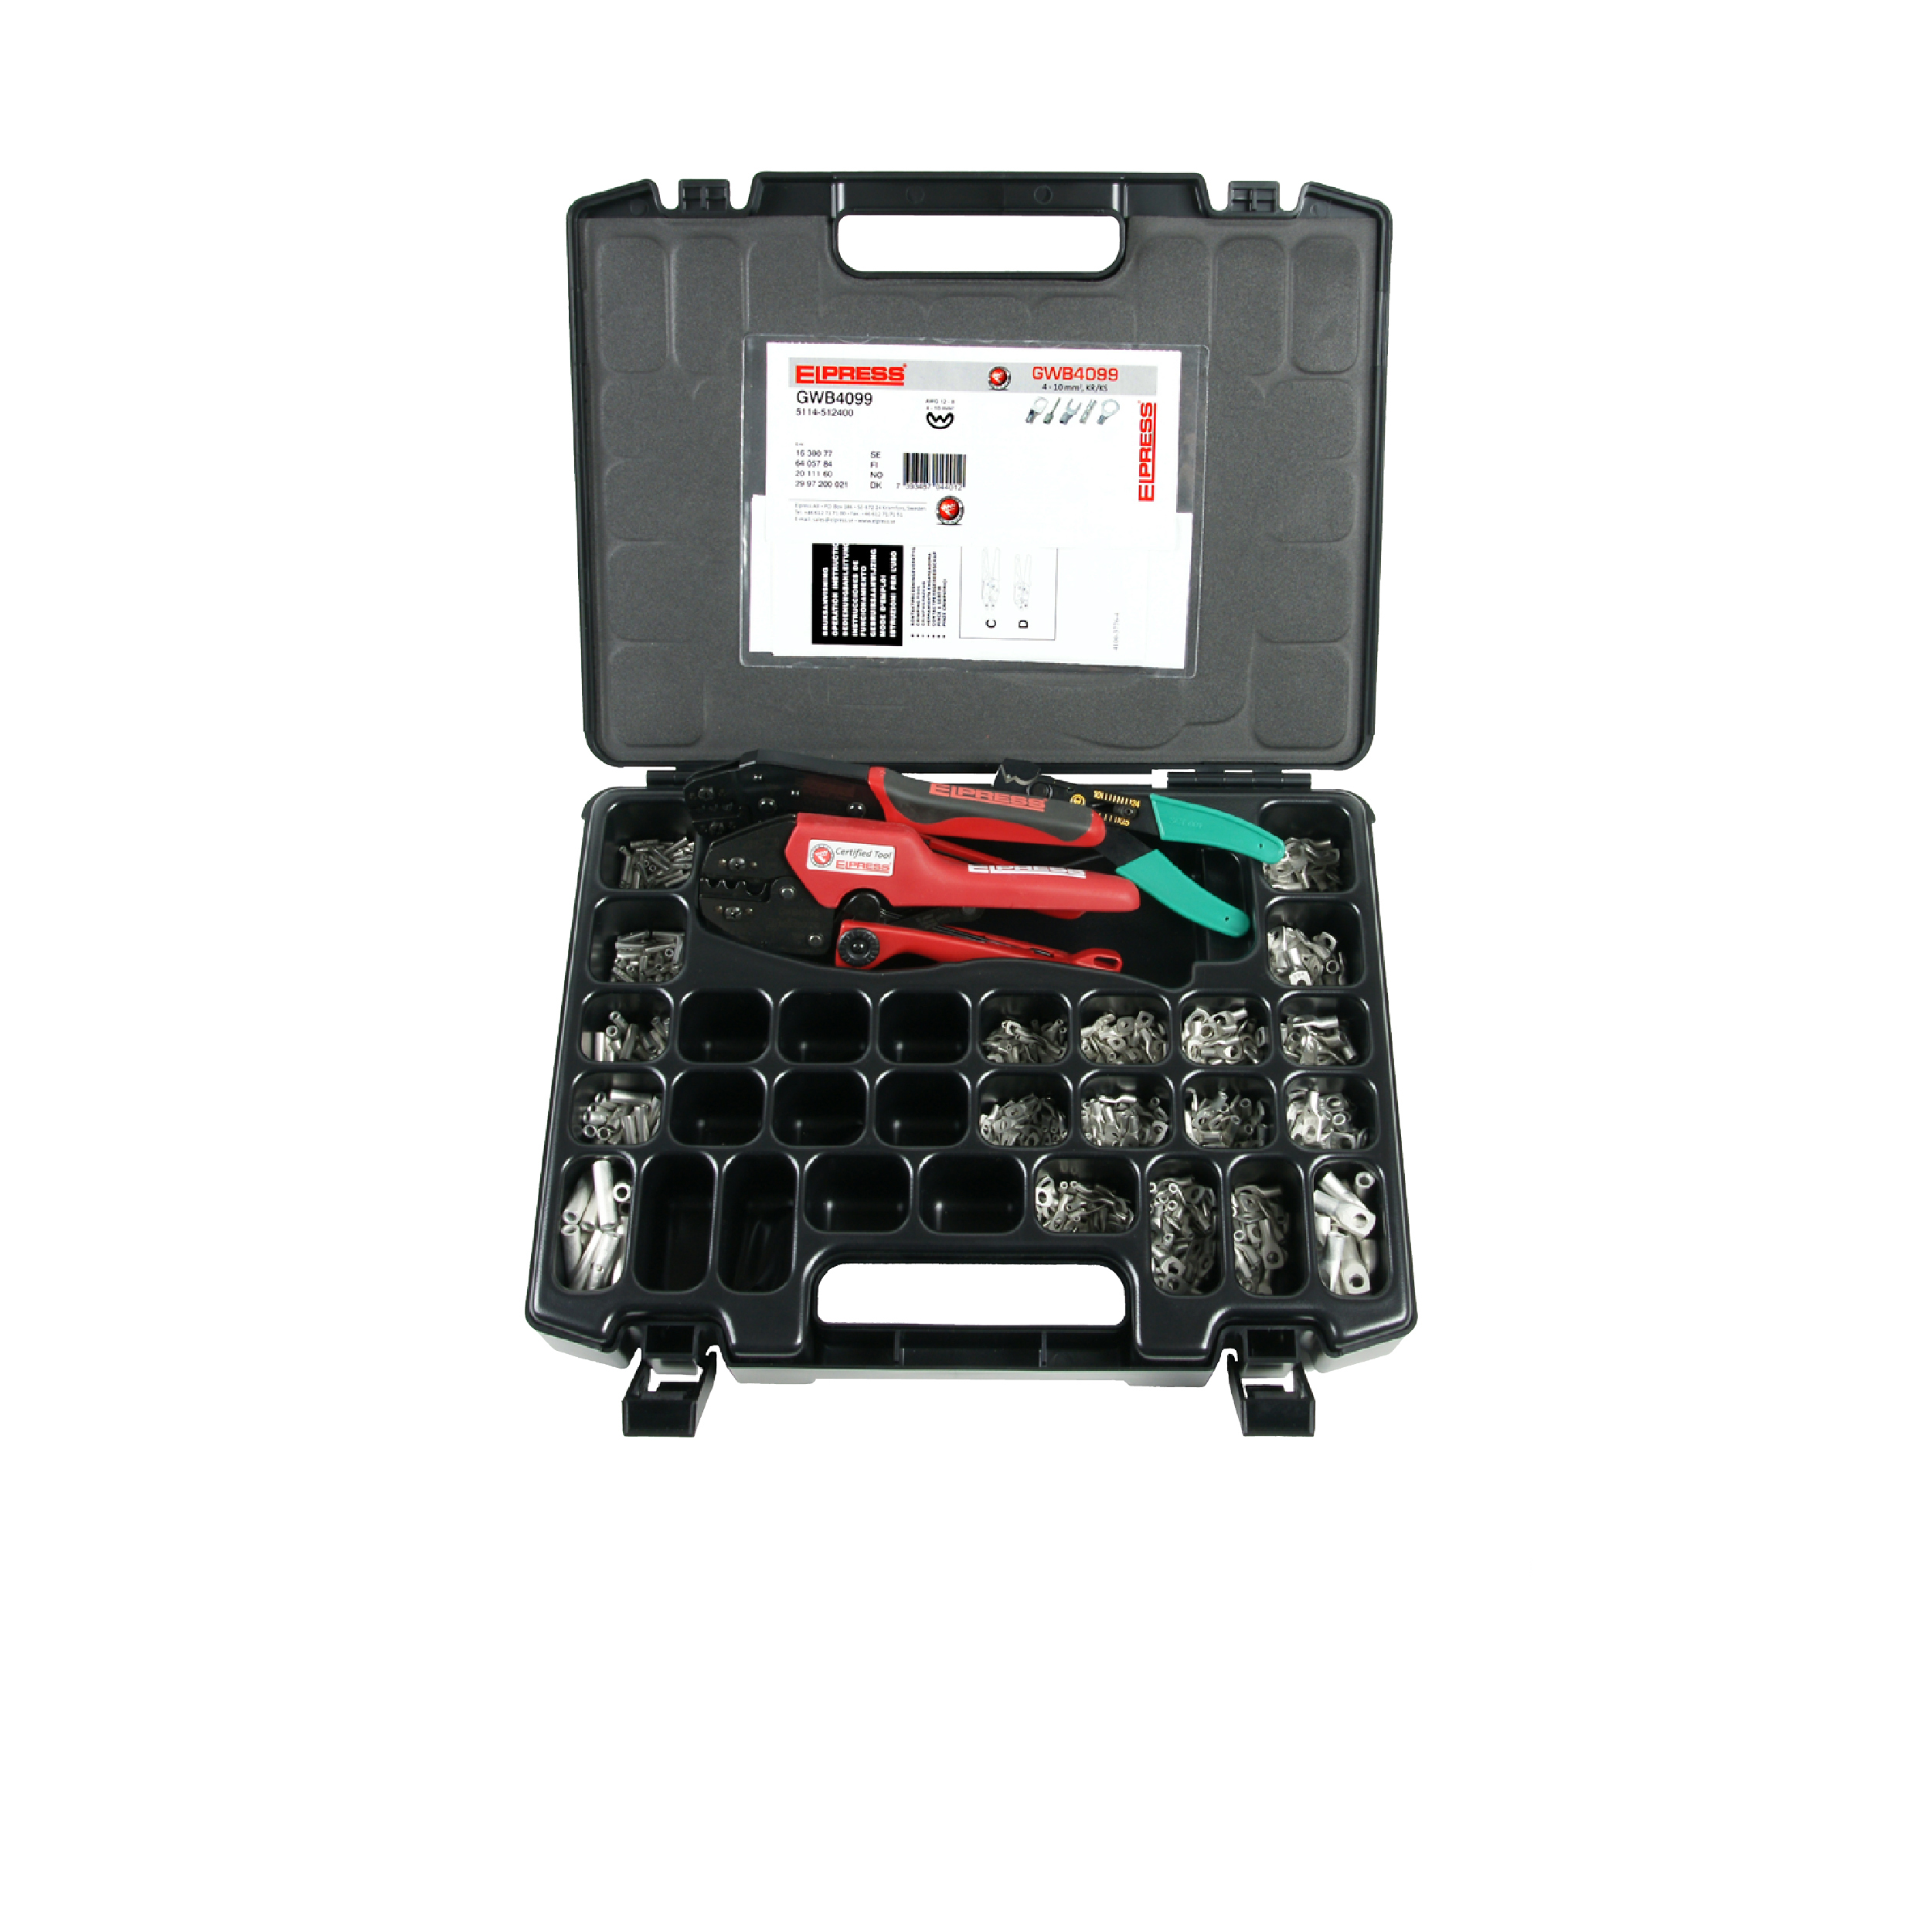 Elpress PL701 Assortment Box